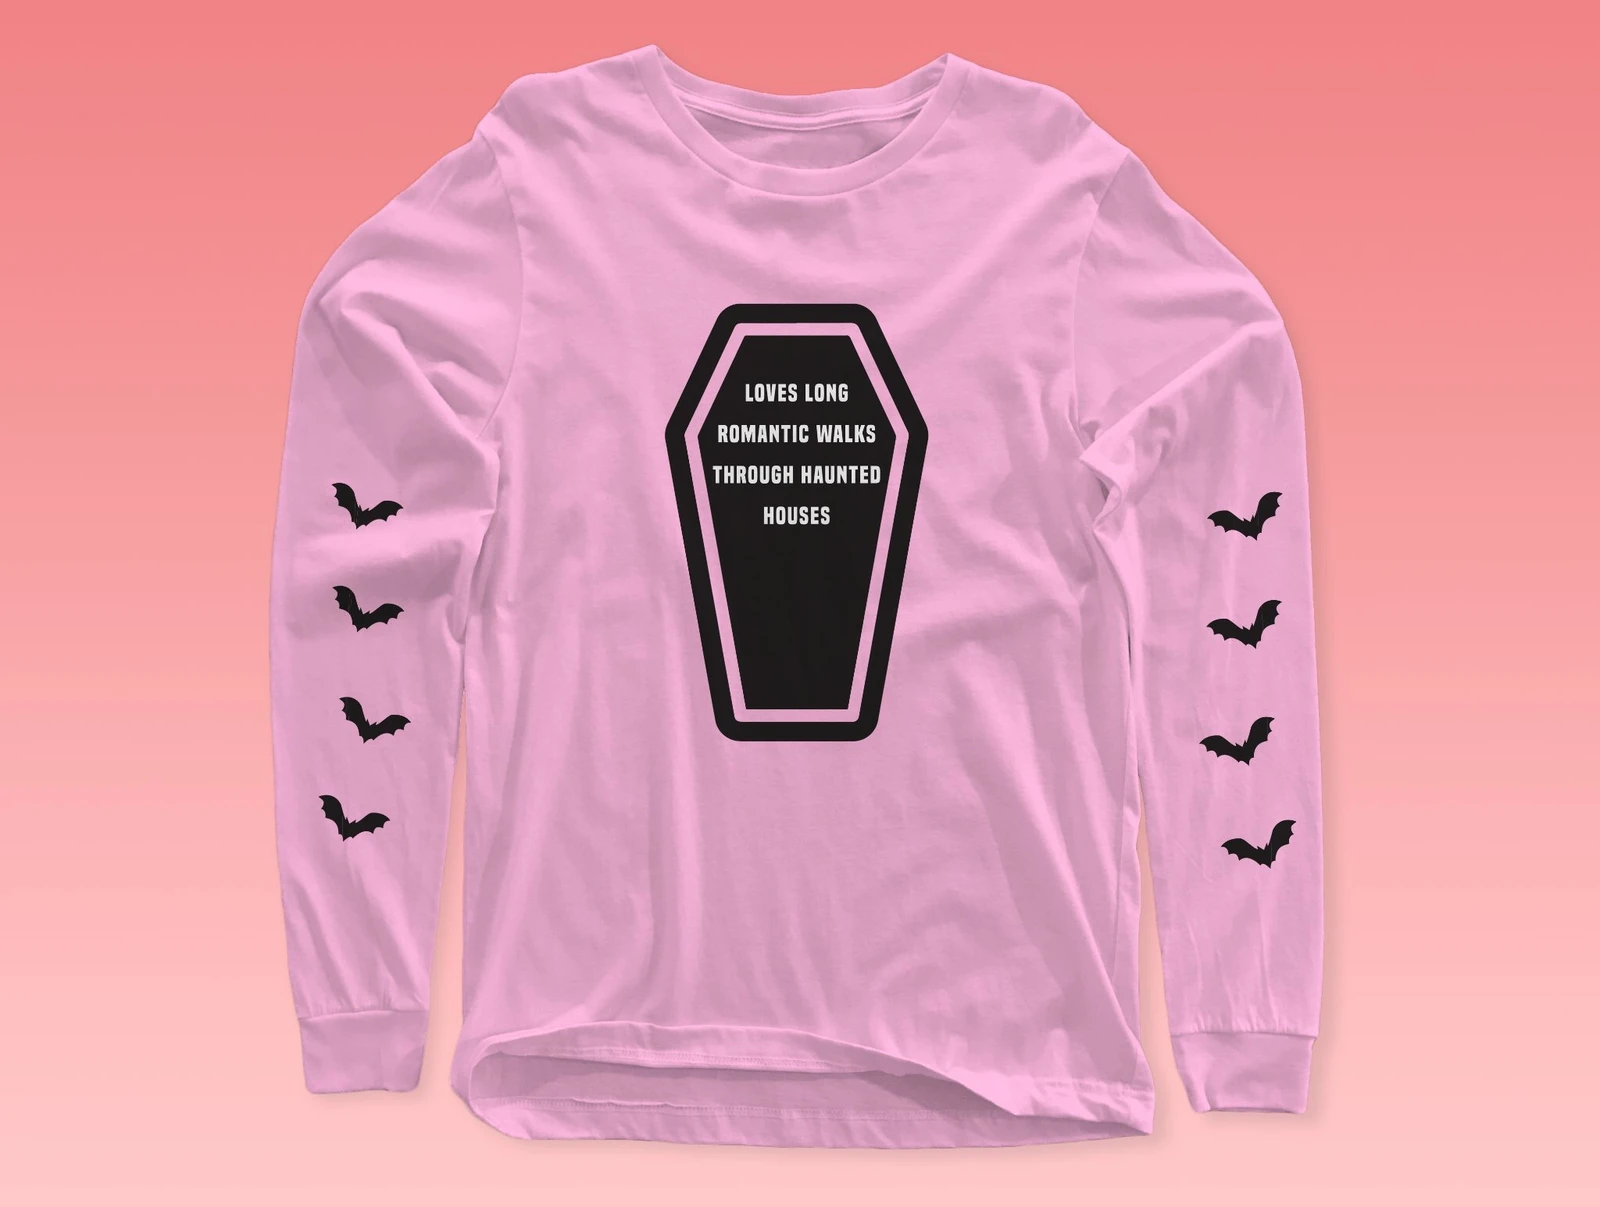 Haunted House Babe Long Sleeve Tee from underrated graphic tee site, Not Your Average Babe.